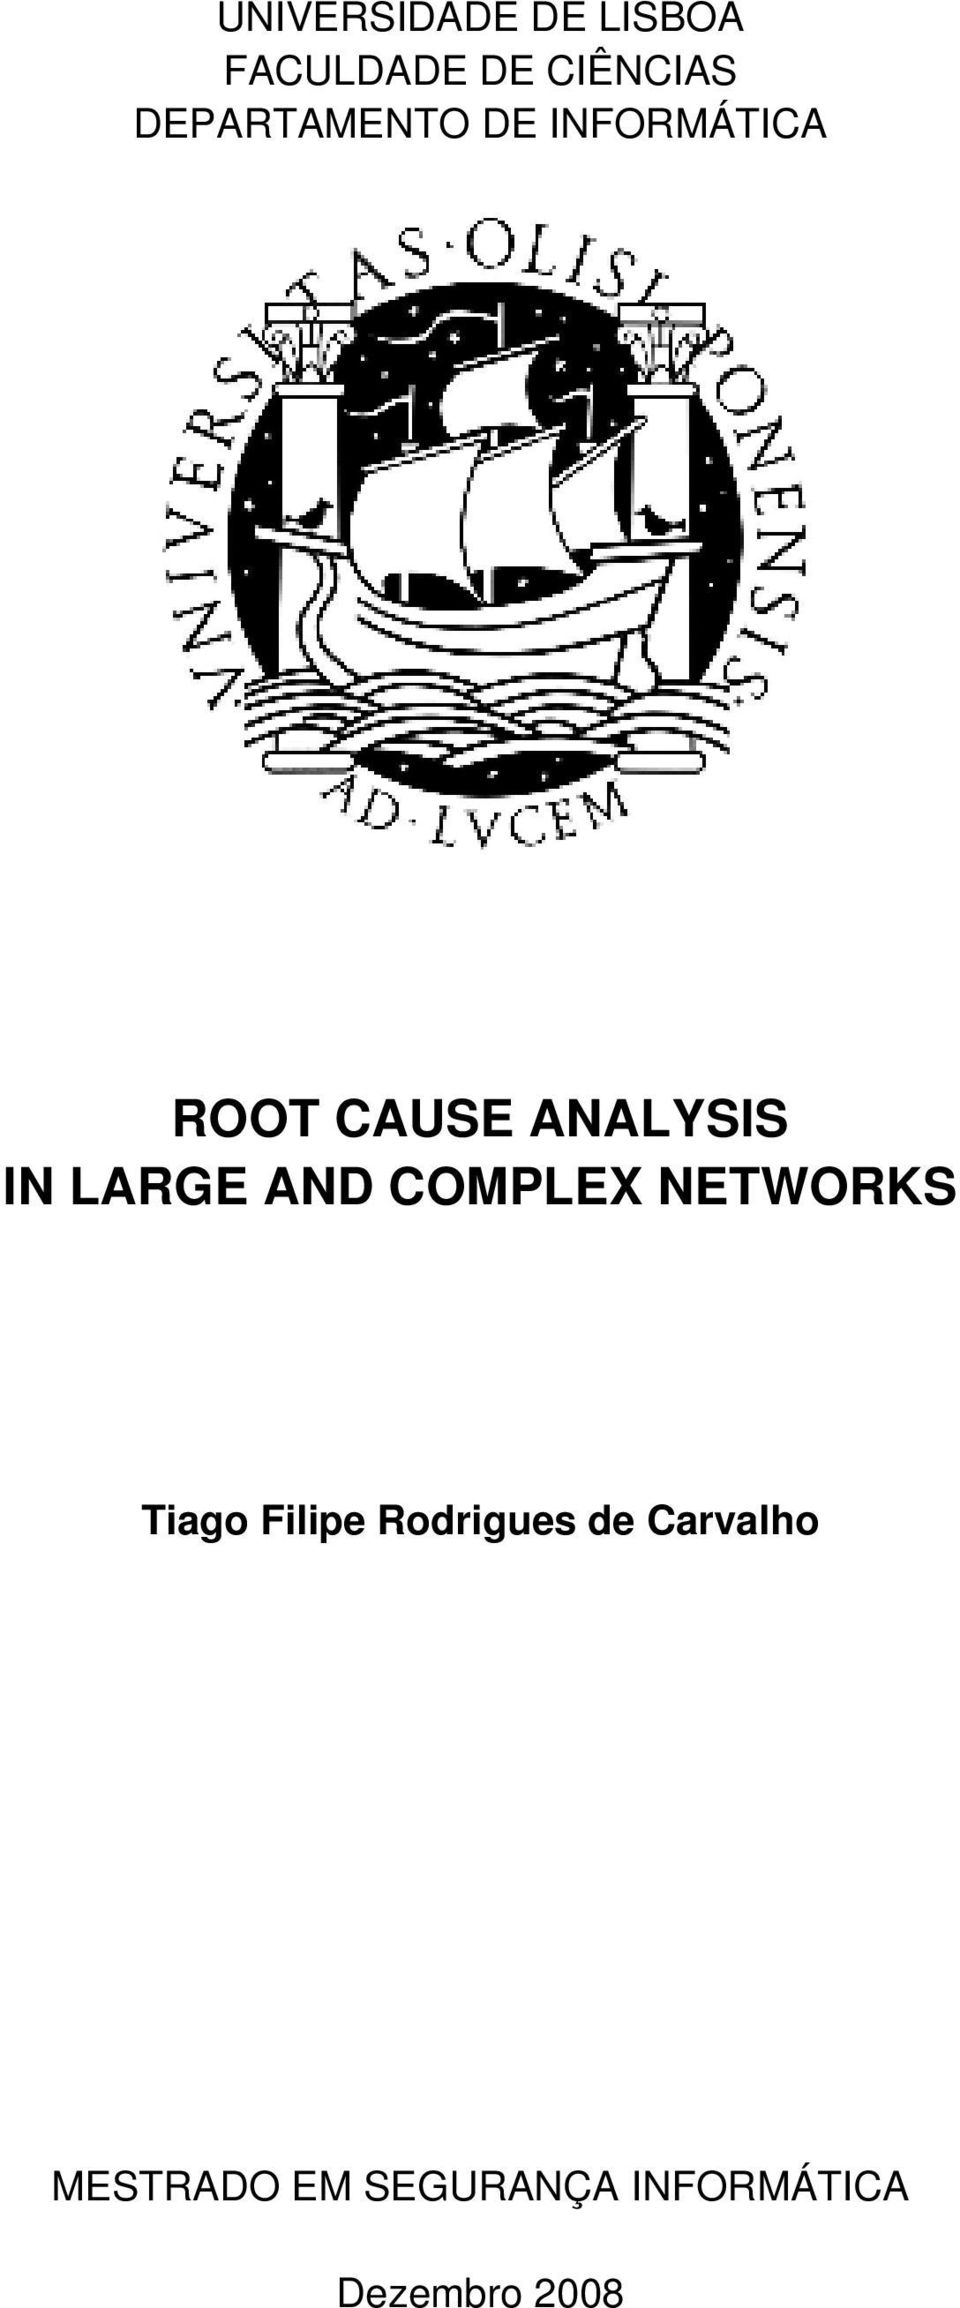 LARGE AND COMPLEX NETWORKS Tiago Filipe Rodrigues